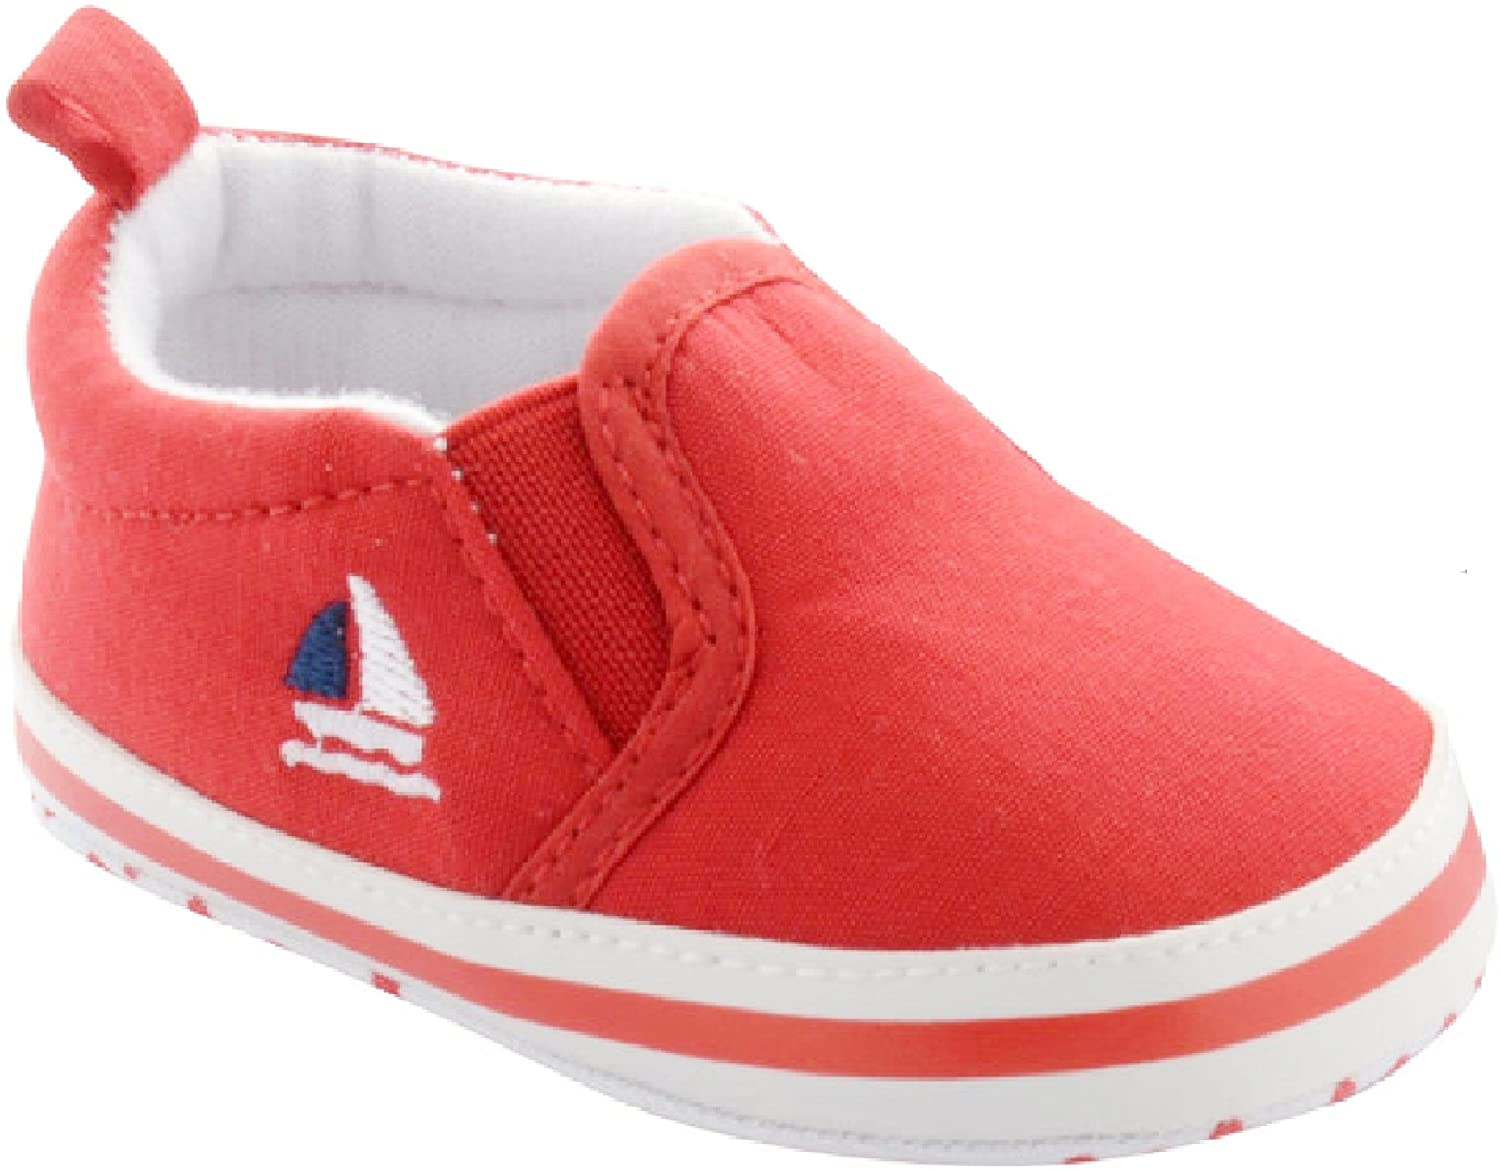 Red Slip on Shoes with Sailboat Embroidery 3-6 Months (3.75